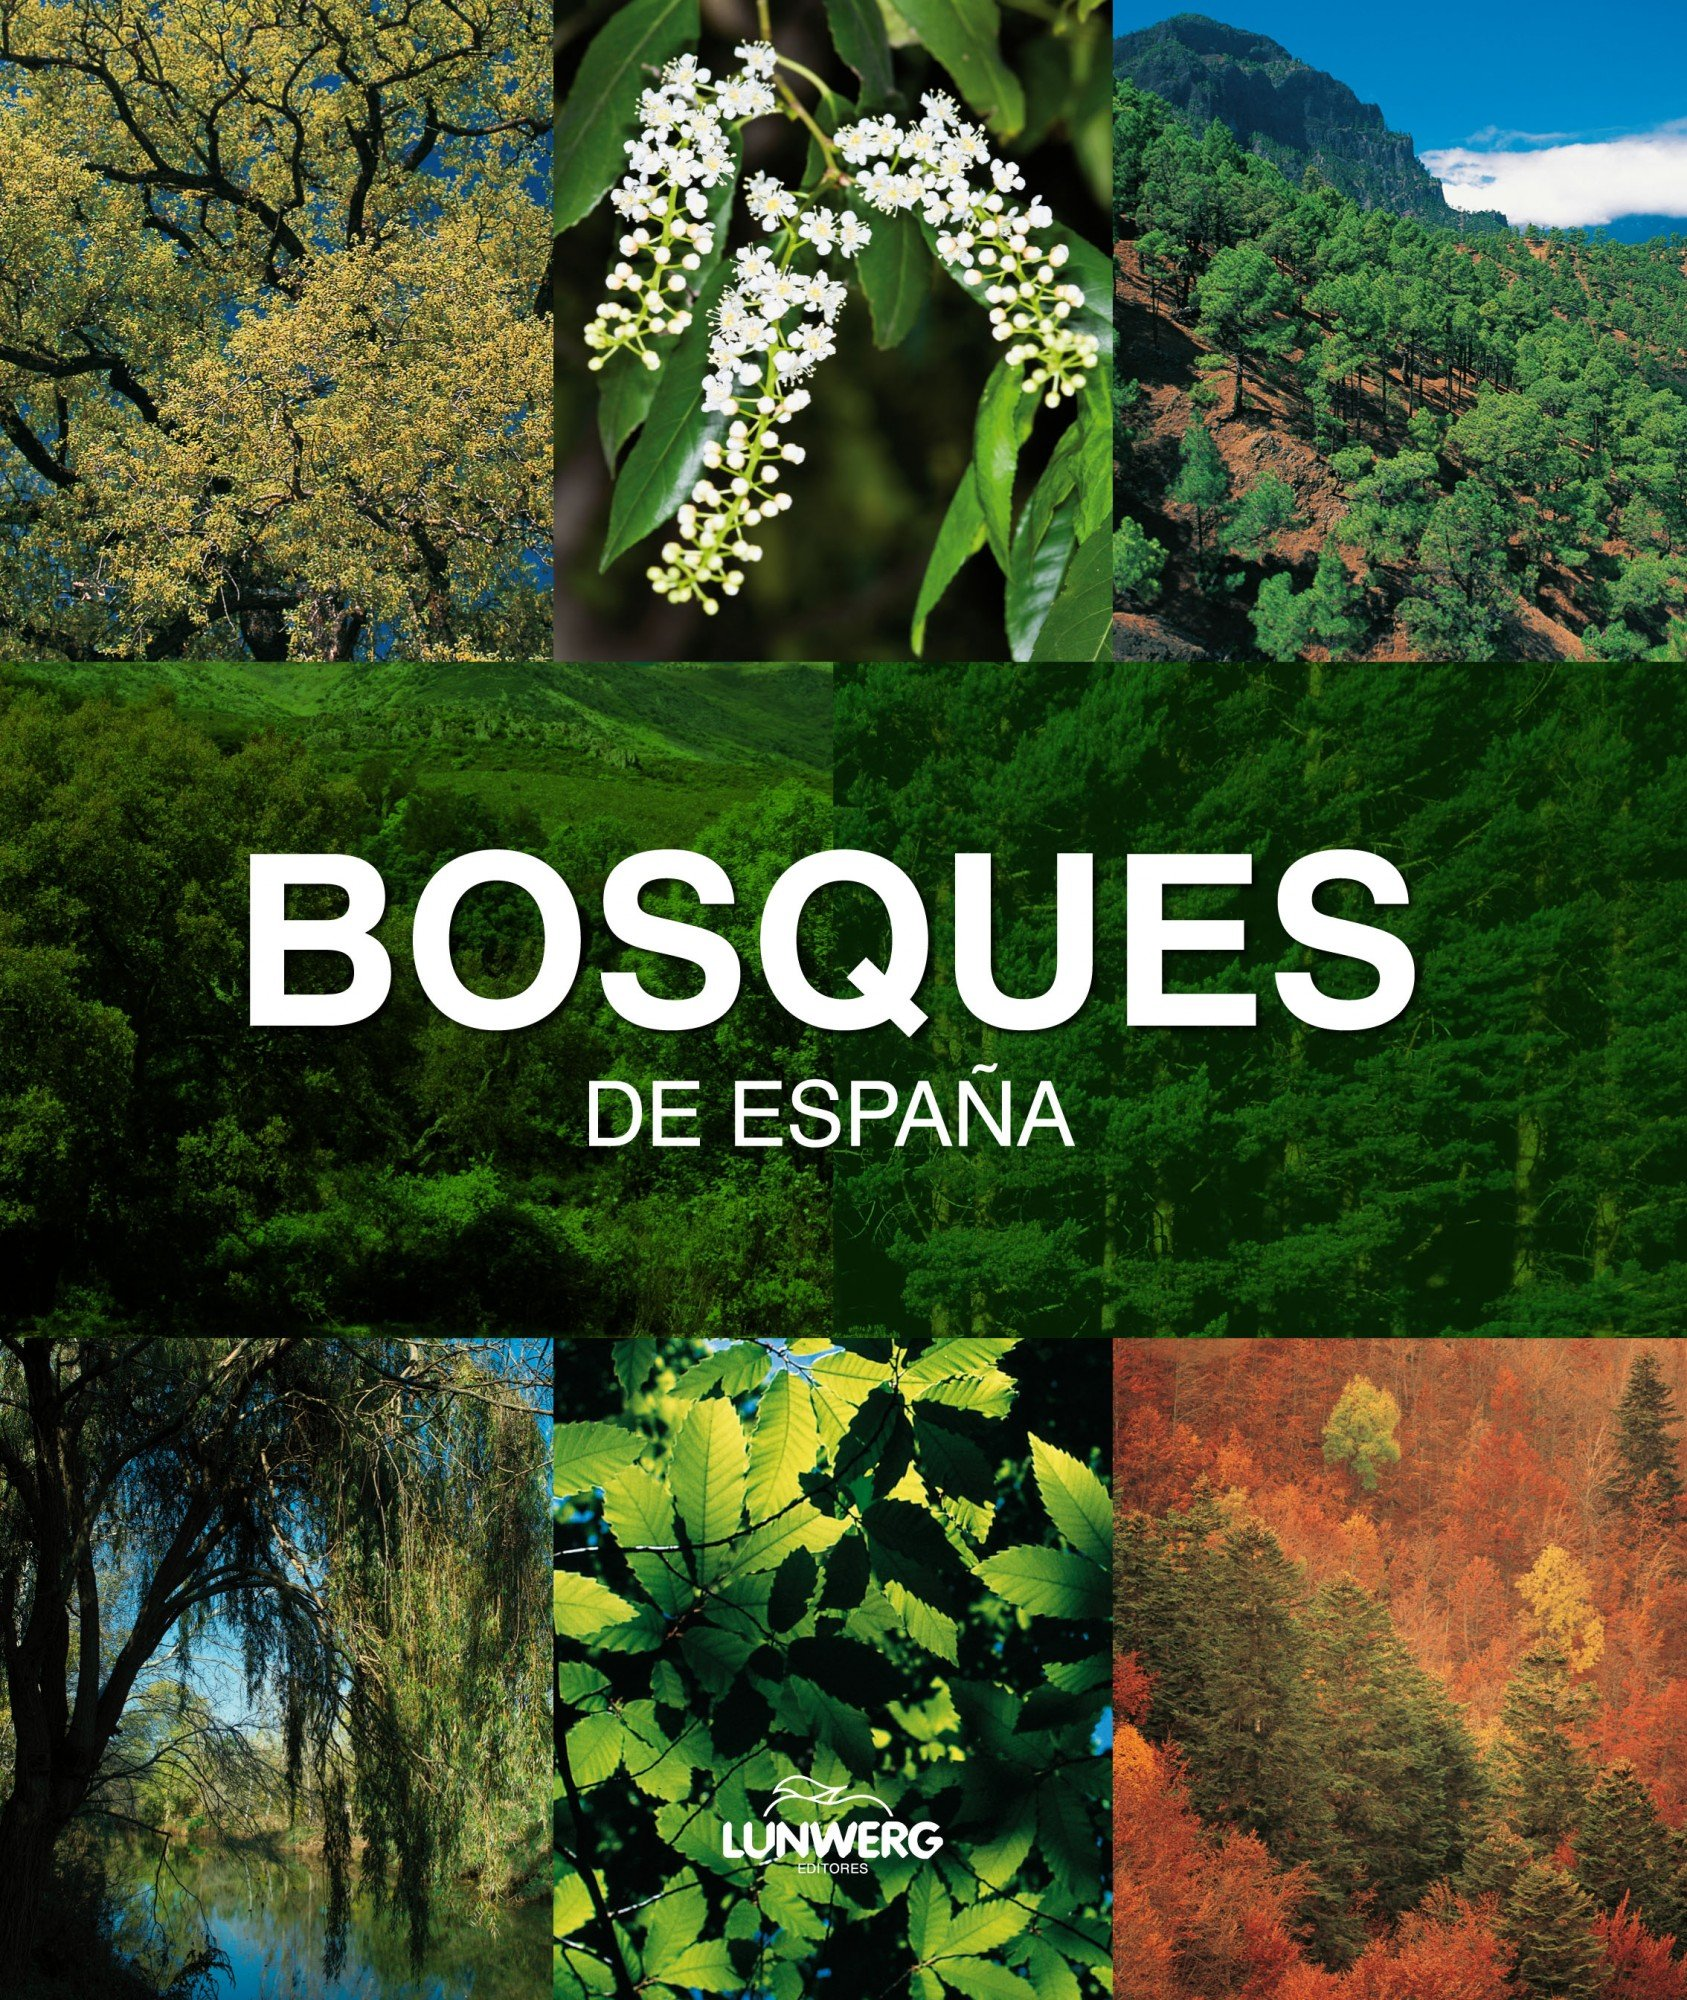 Bosques de España. Lunwerg Medium: Amazon.es: Araújo, Joaquín: Libros